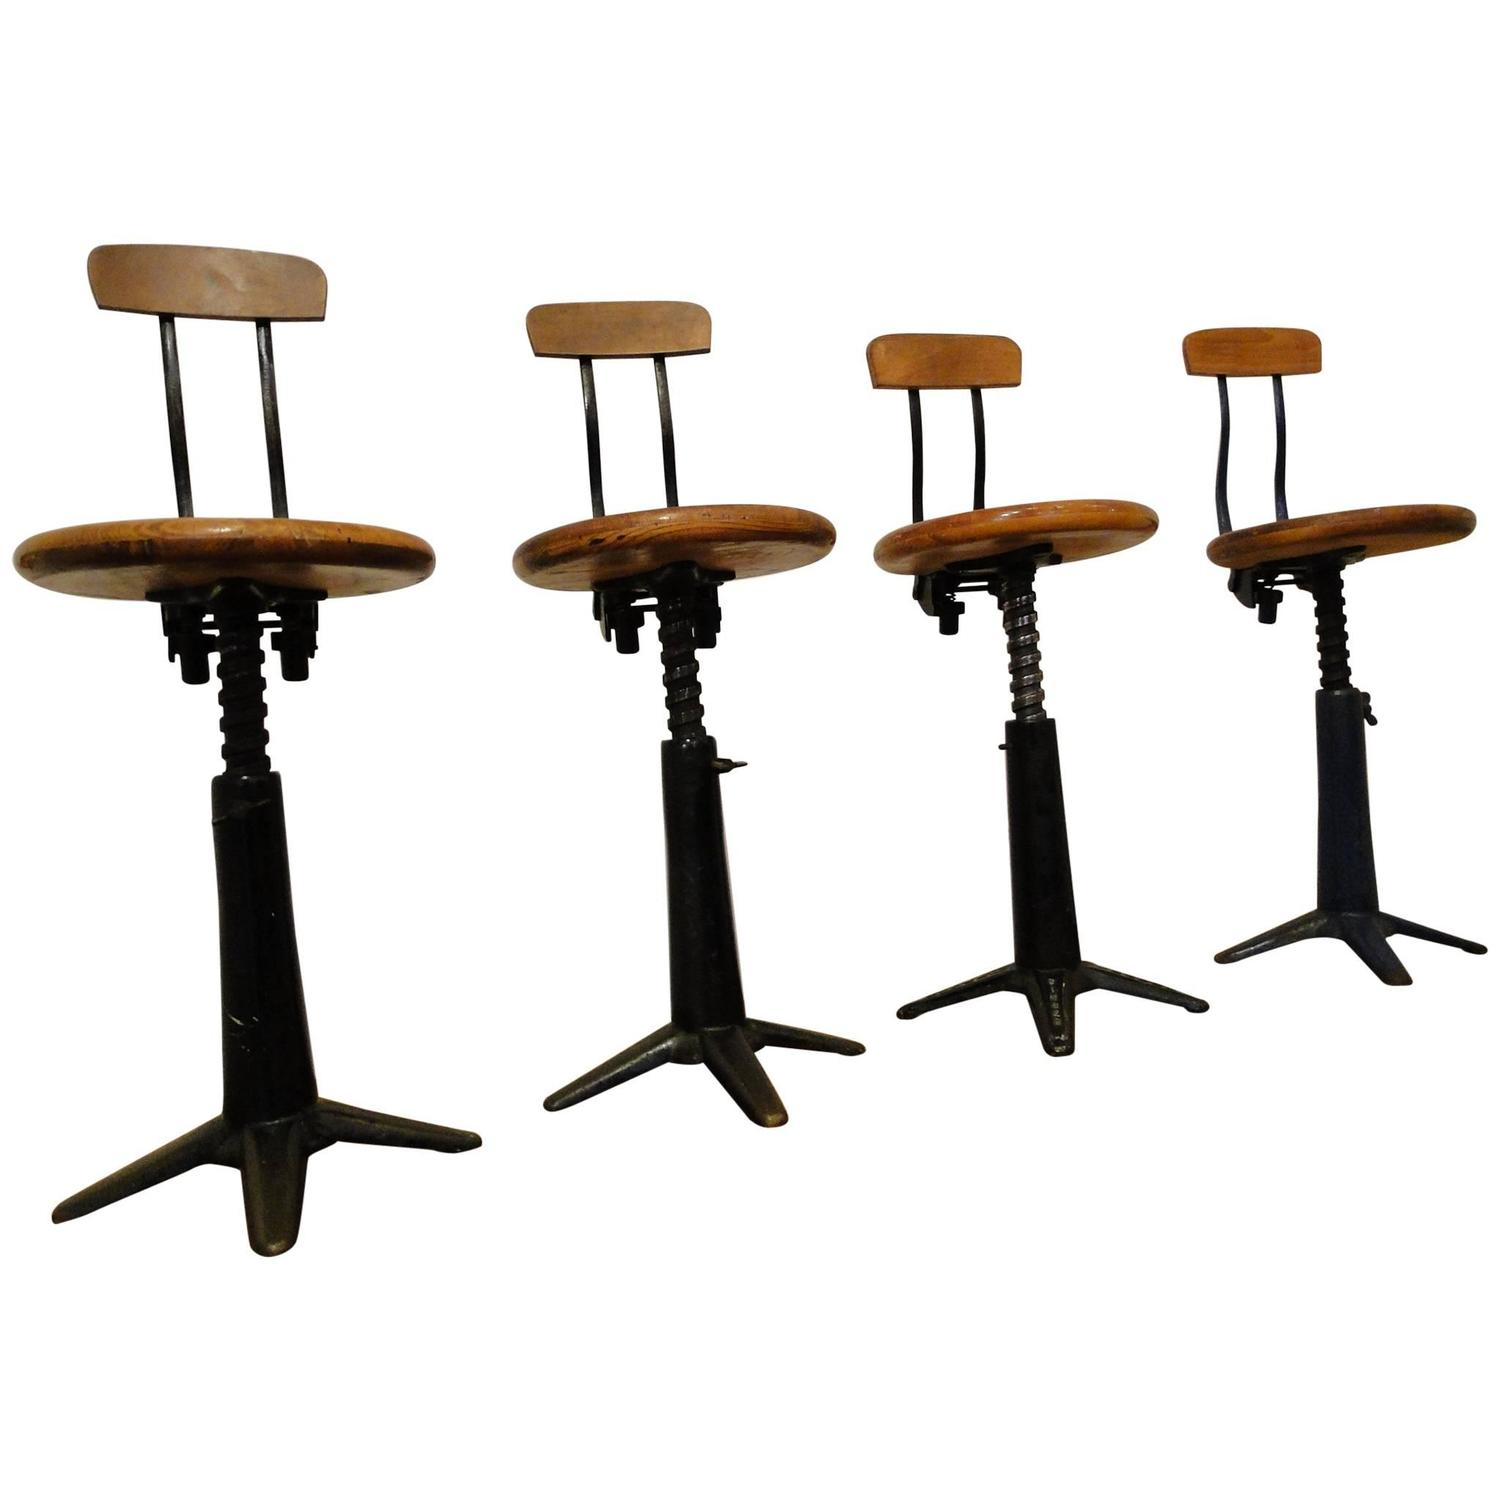 Vintage Industrial Singer Work Chairs Stool by Simanco at 1stdibs